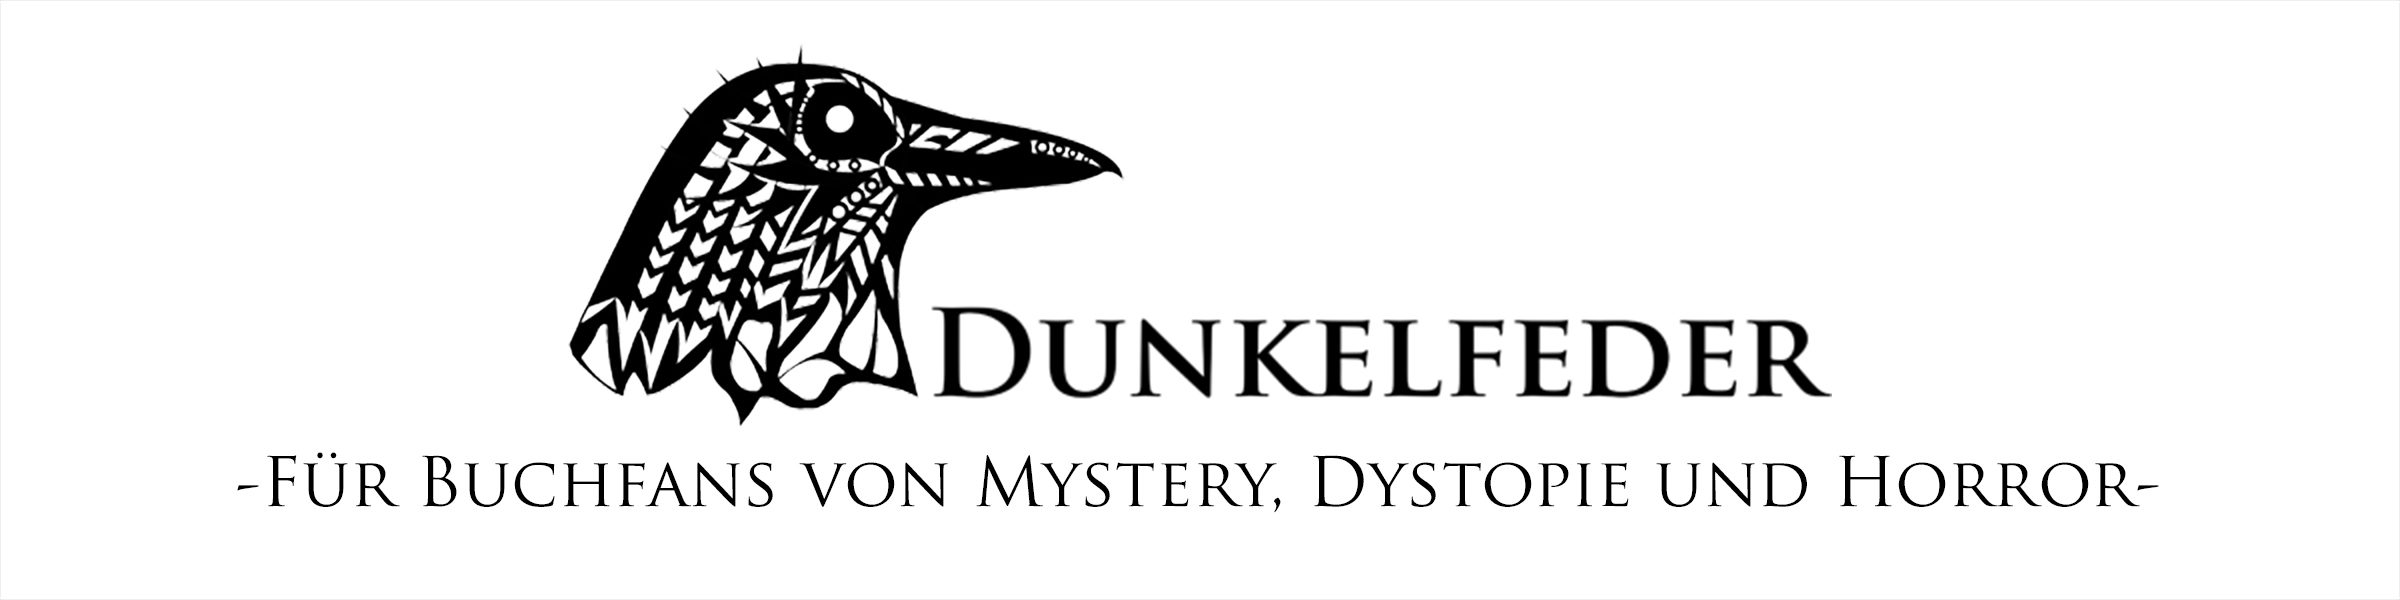 Dunkelfeder